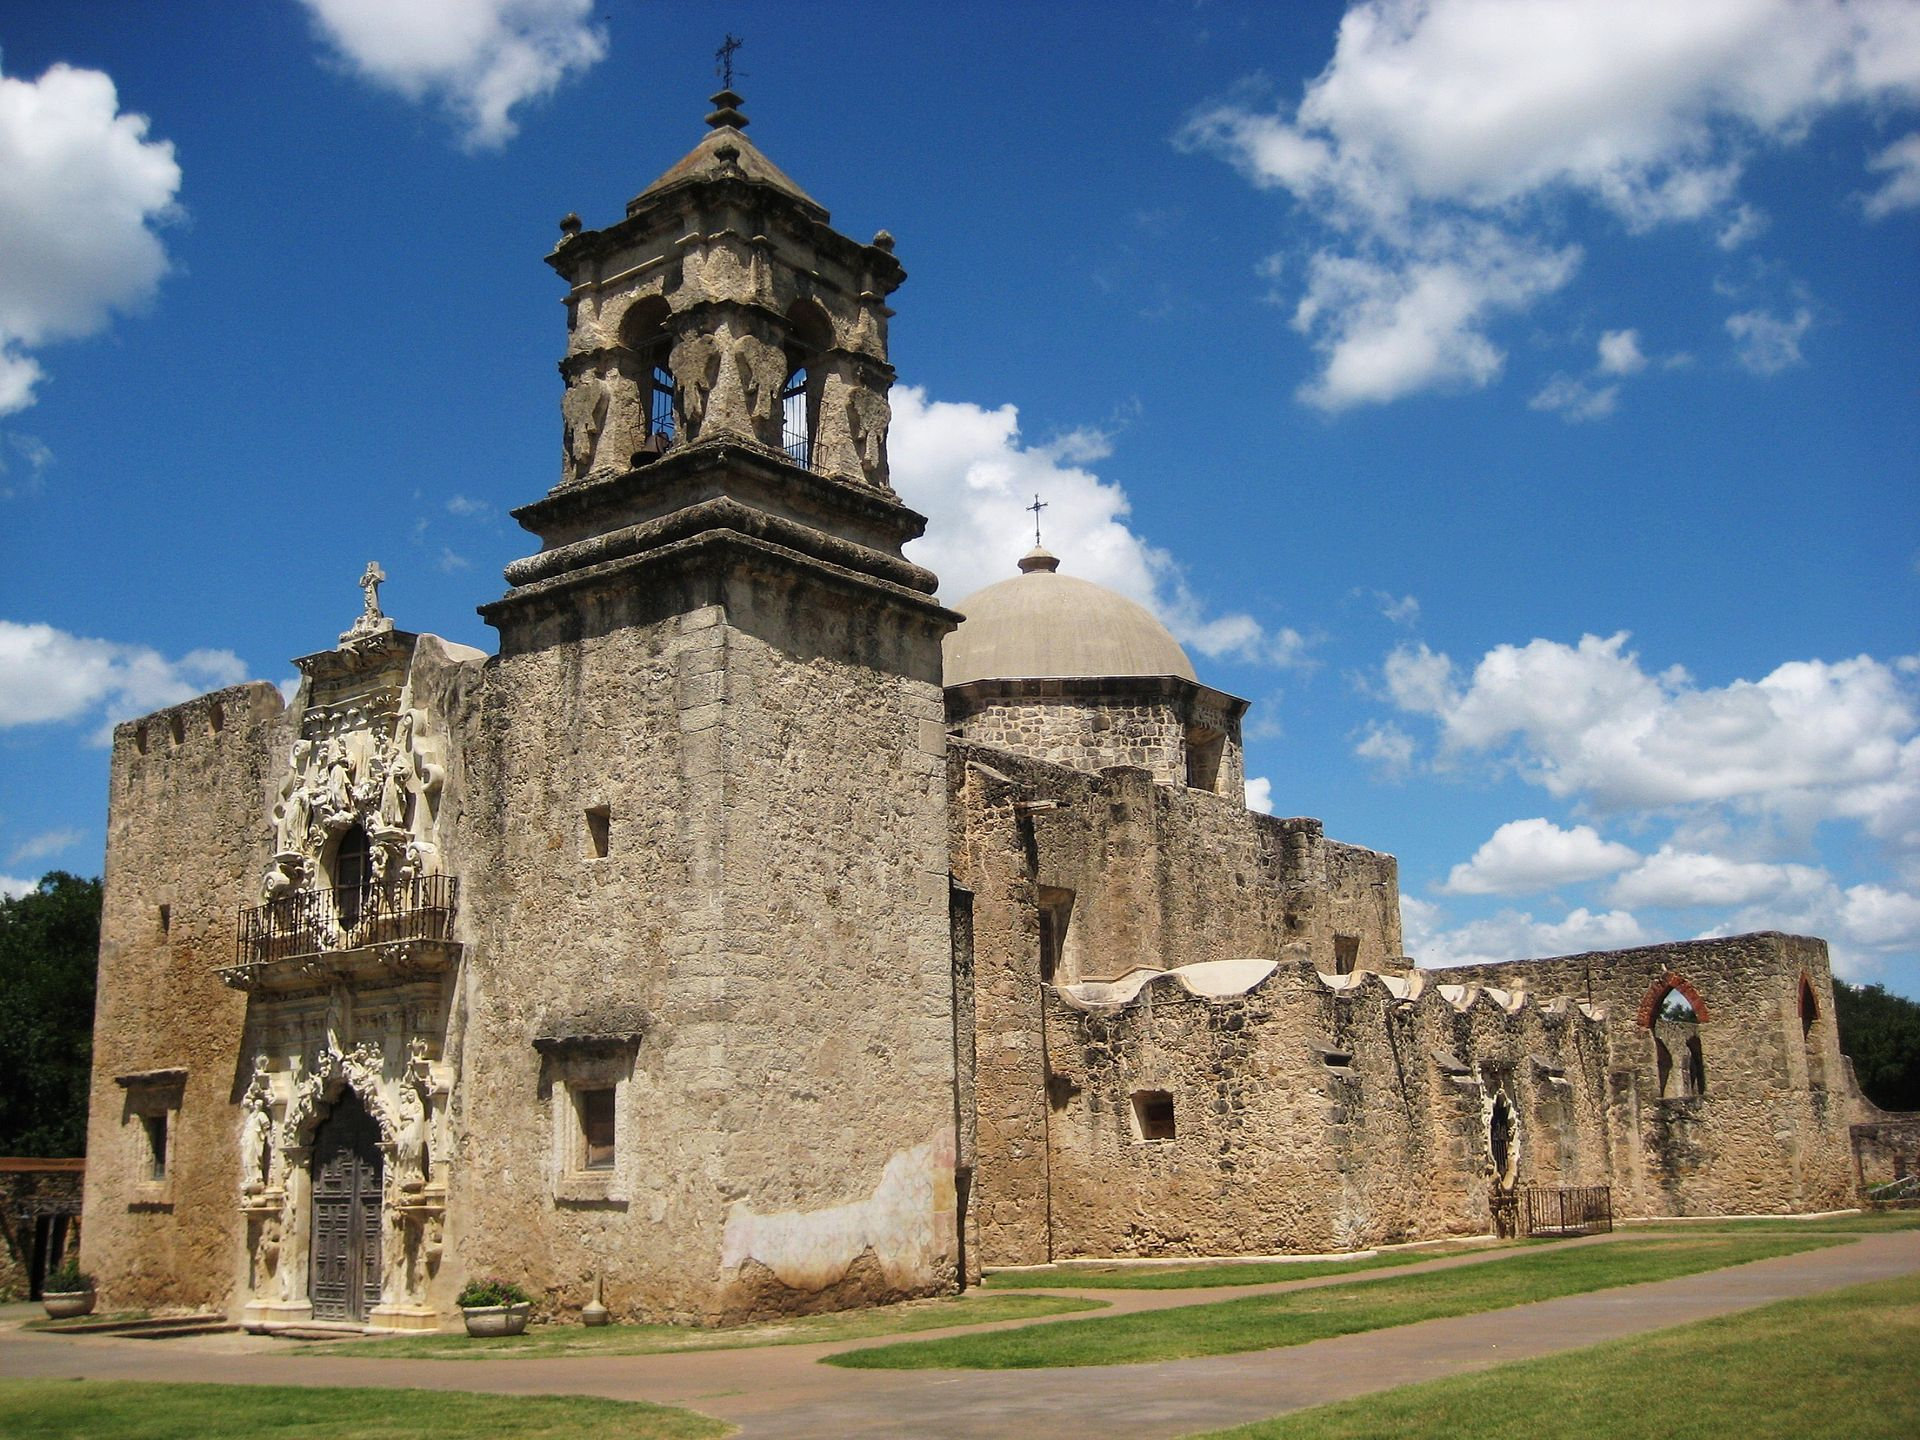 Built in 1755, Mission Concepción is the country's oldest unrestored church. It took 20 years to complete.